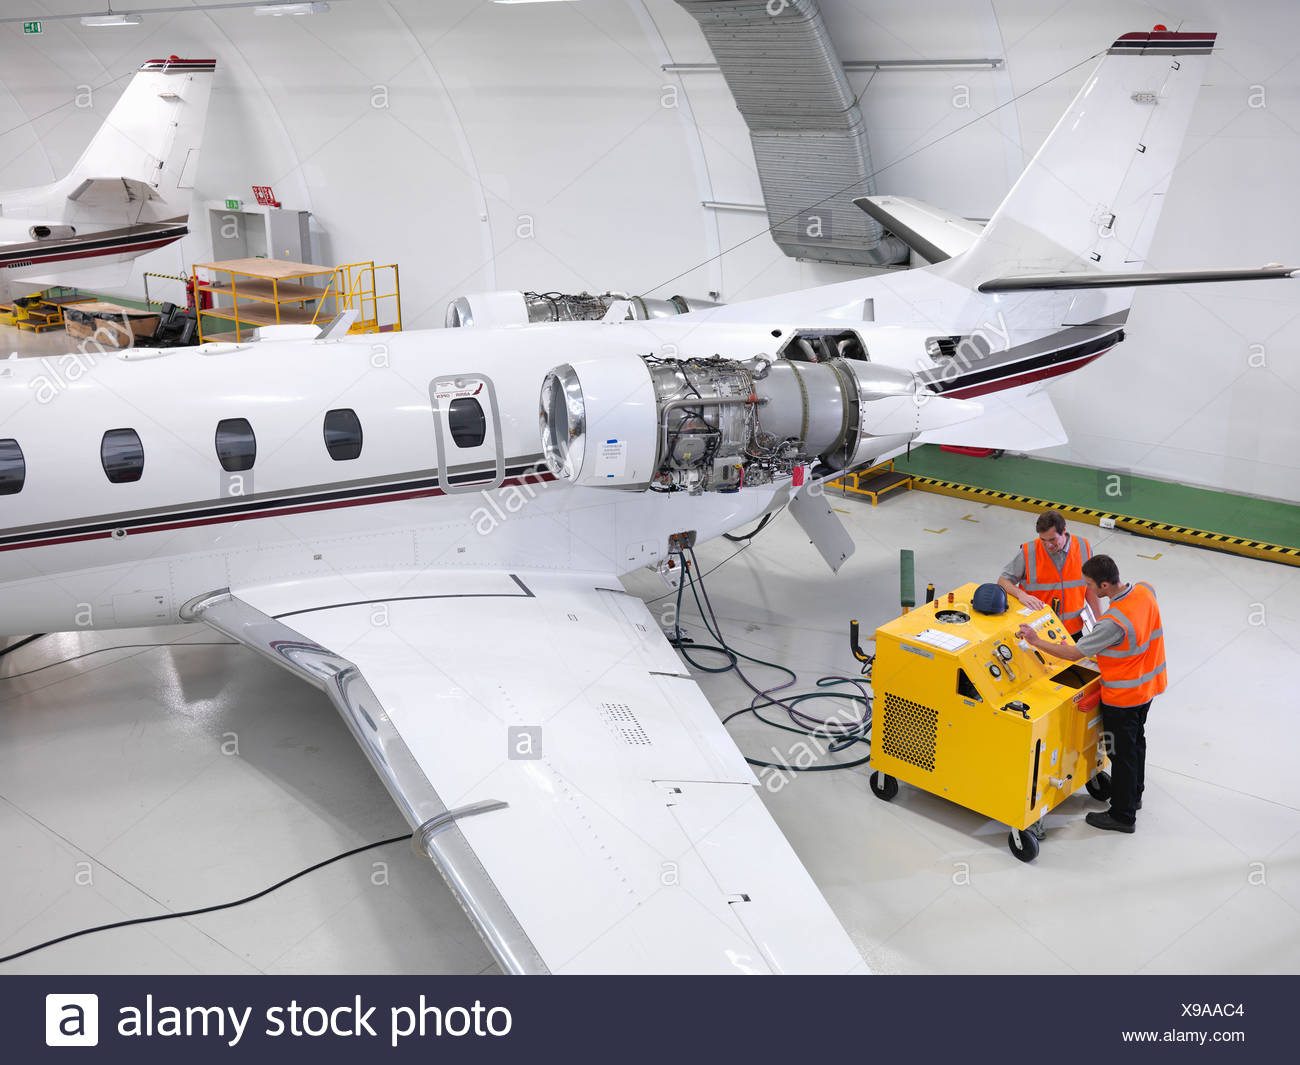 Engineers service a jet aircraft - Stock Image